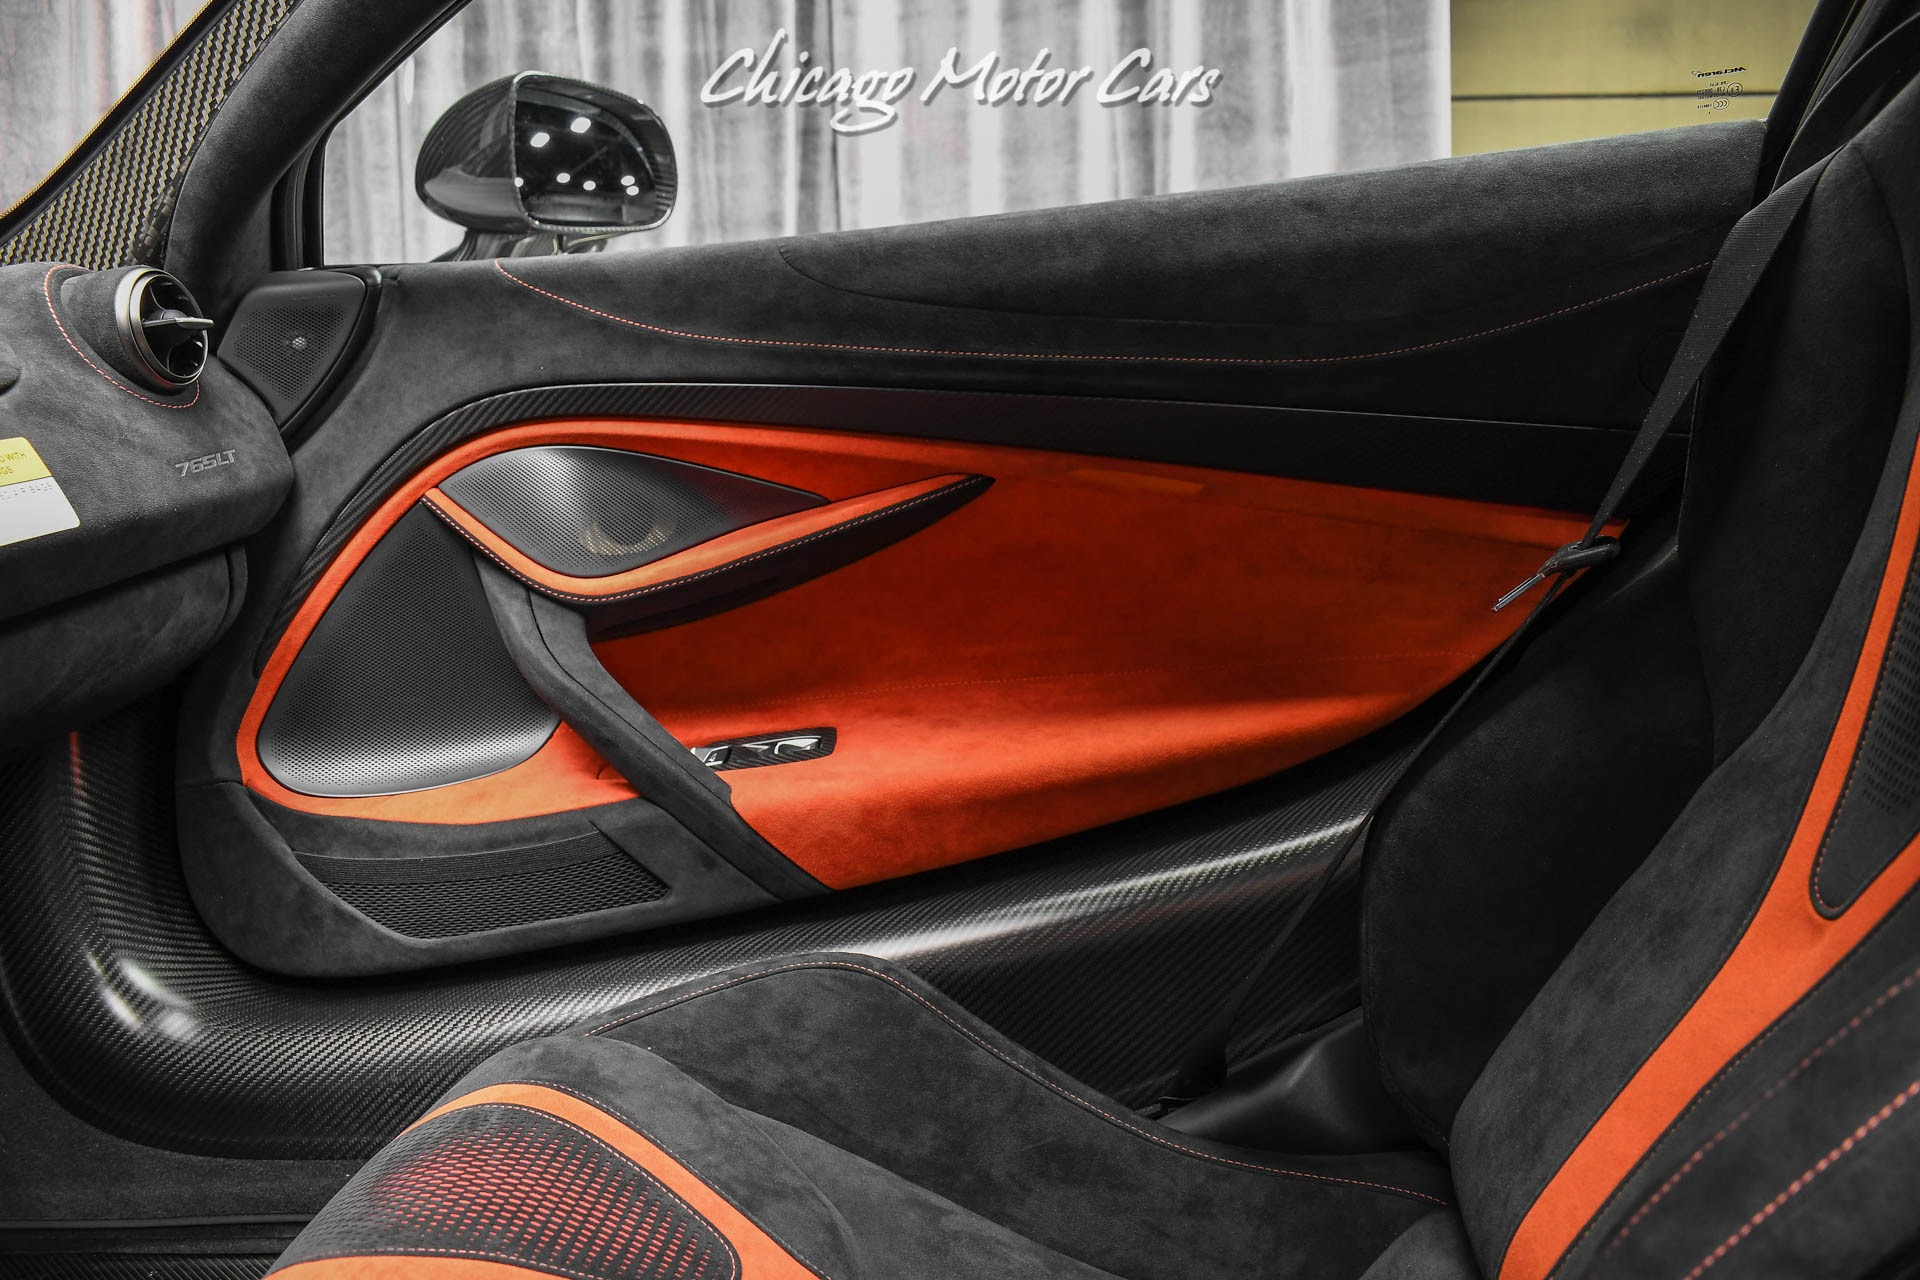 Used-2021-Mclaren-765LT-Coupe-LOADED-MSO-NARDO-PAINT-LIMITED-PRODUCTION--595--765